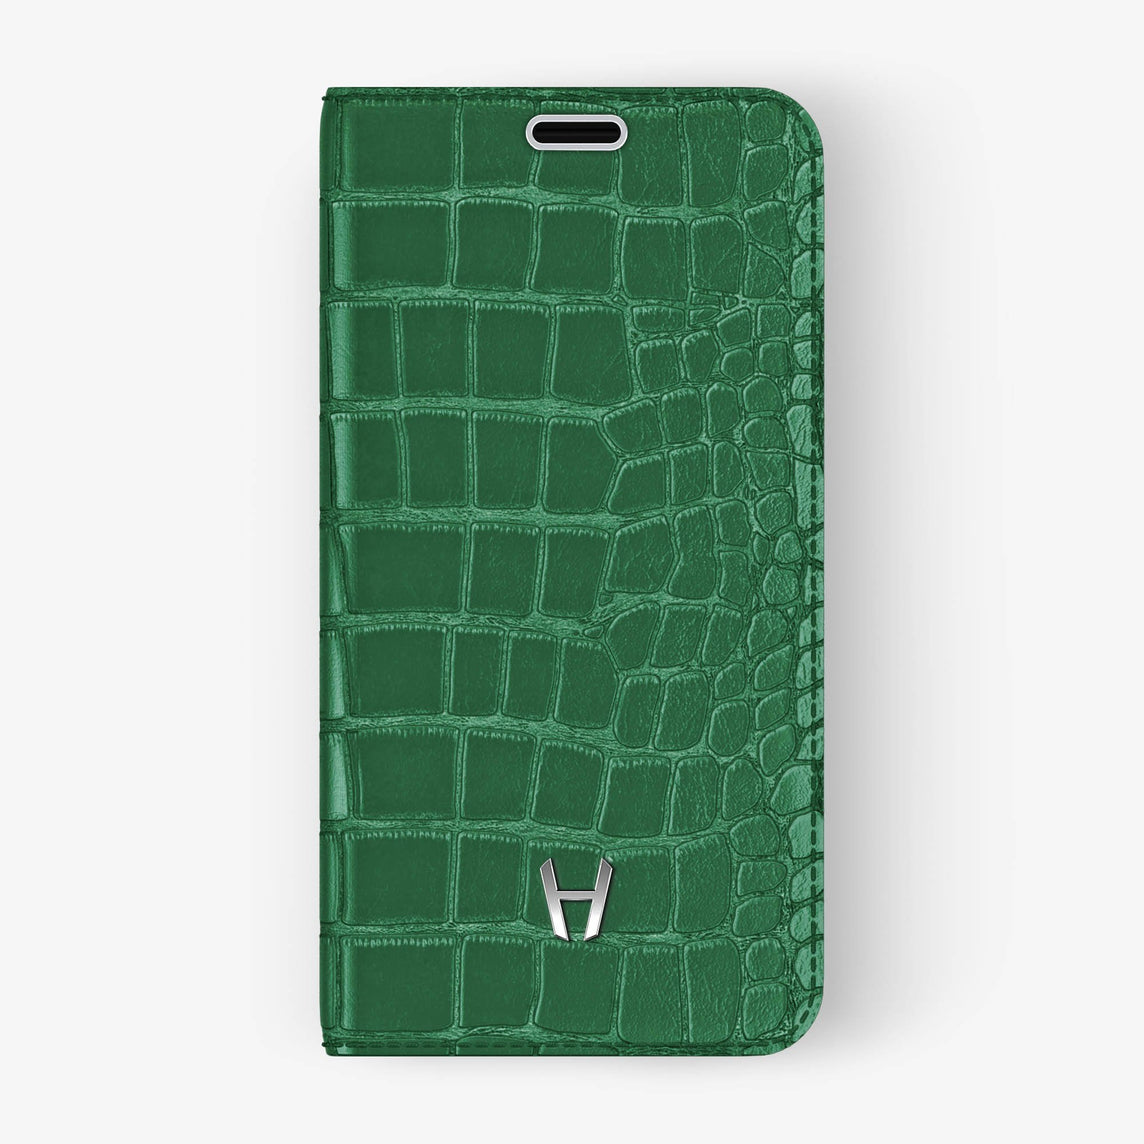 Alligator Folio Case iPhone X/Xs | Green - Stainless Steel without-personalization